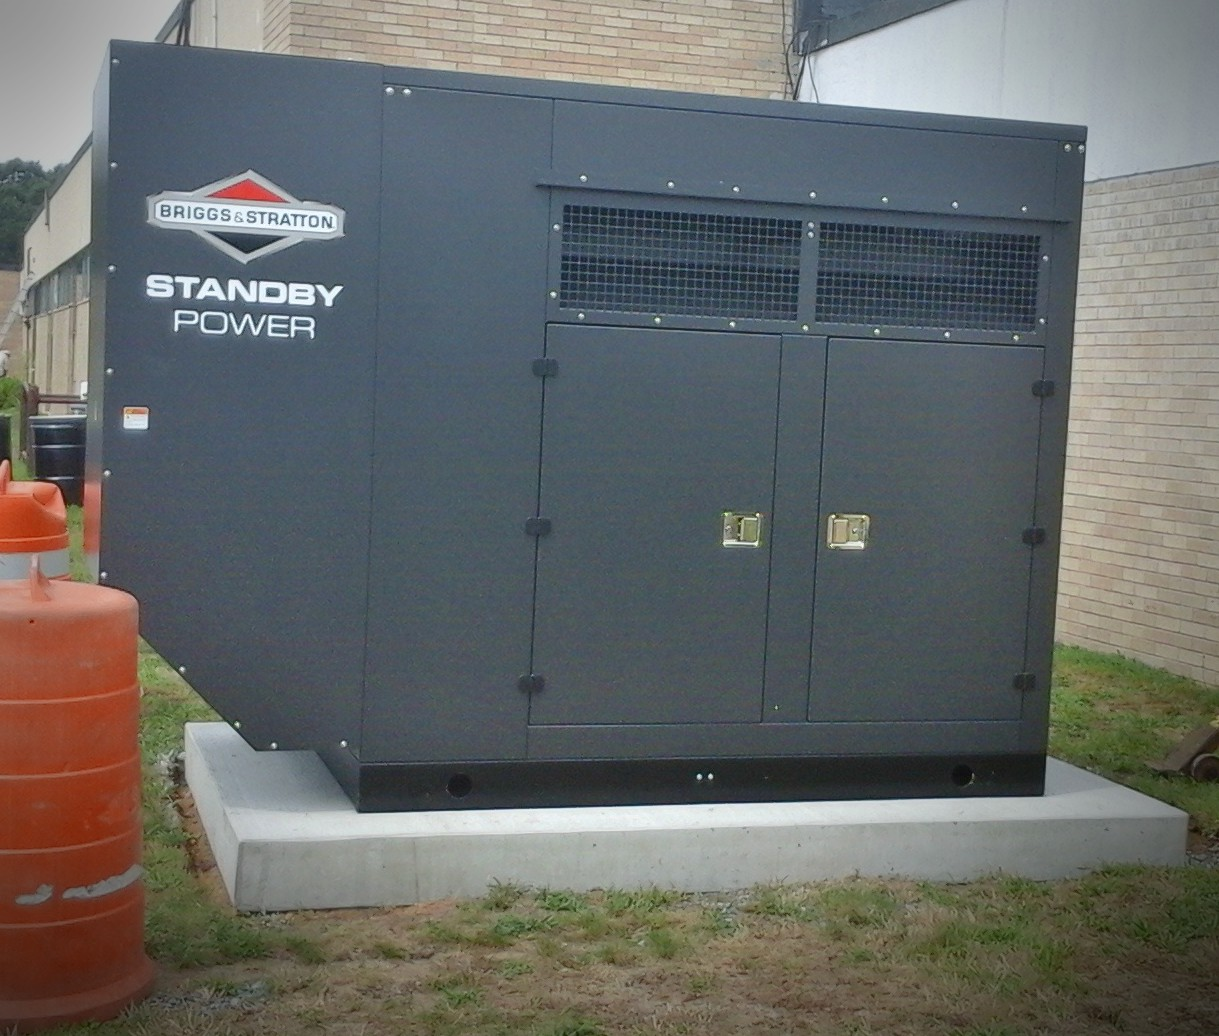 Briggs & Stratton Commercial Generator for Mashpee Schools